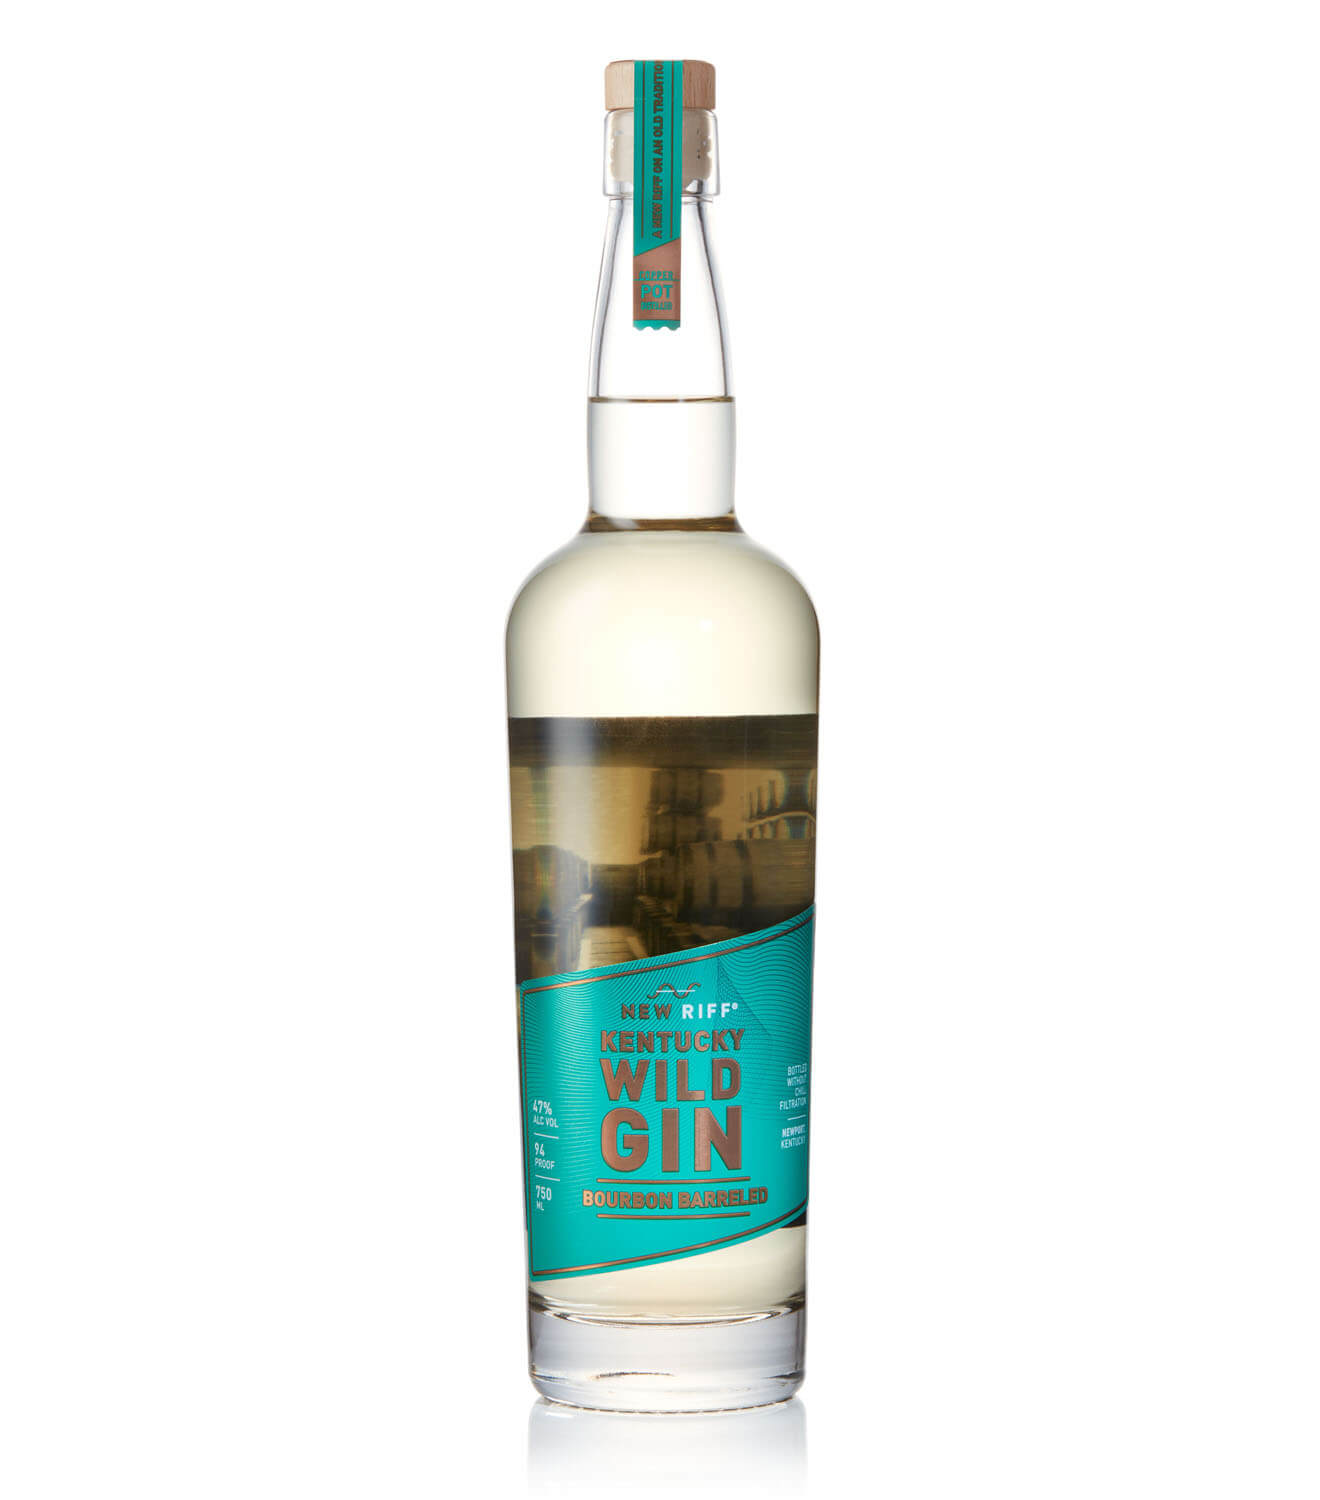 New Riff Wild Gin Bourbon Barreled, bottle on white